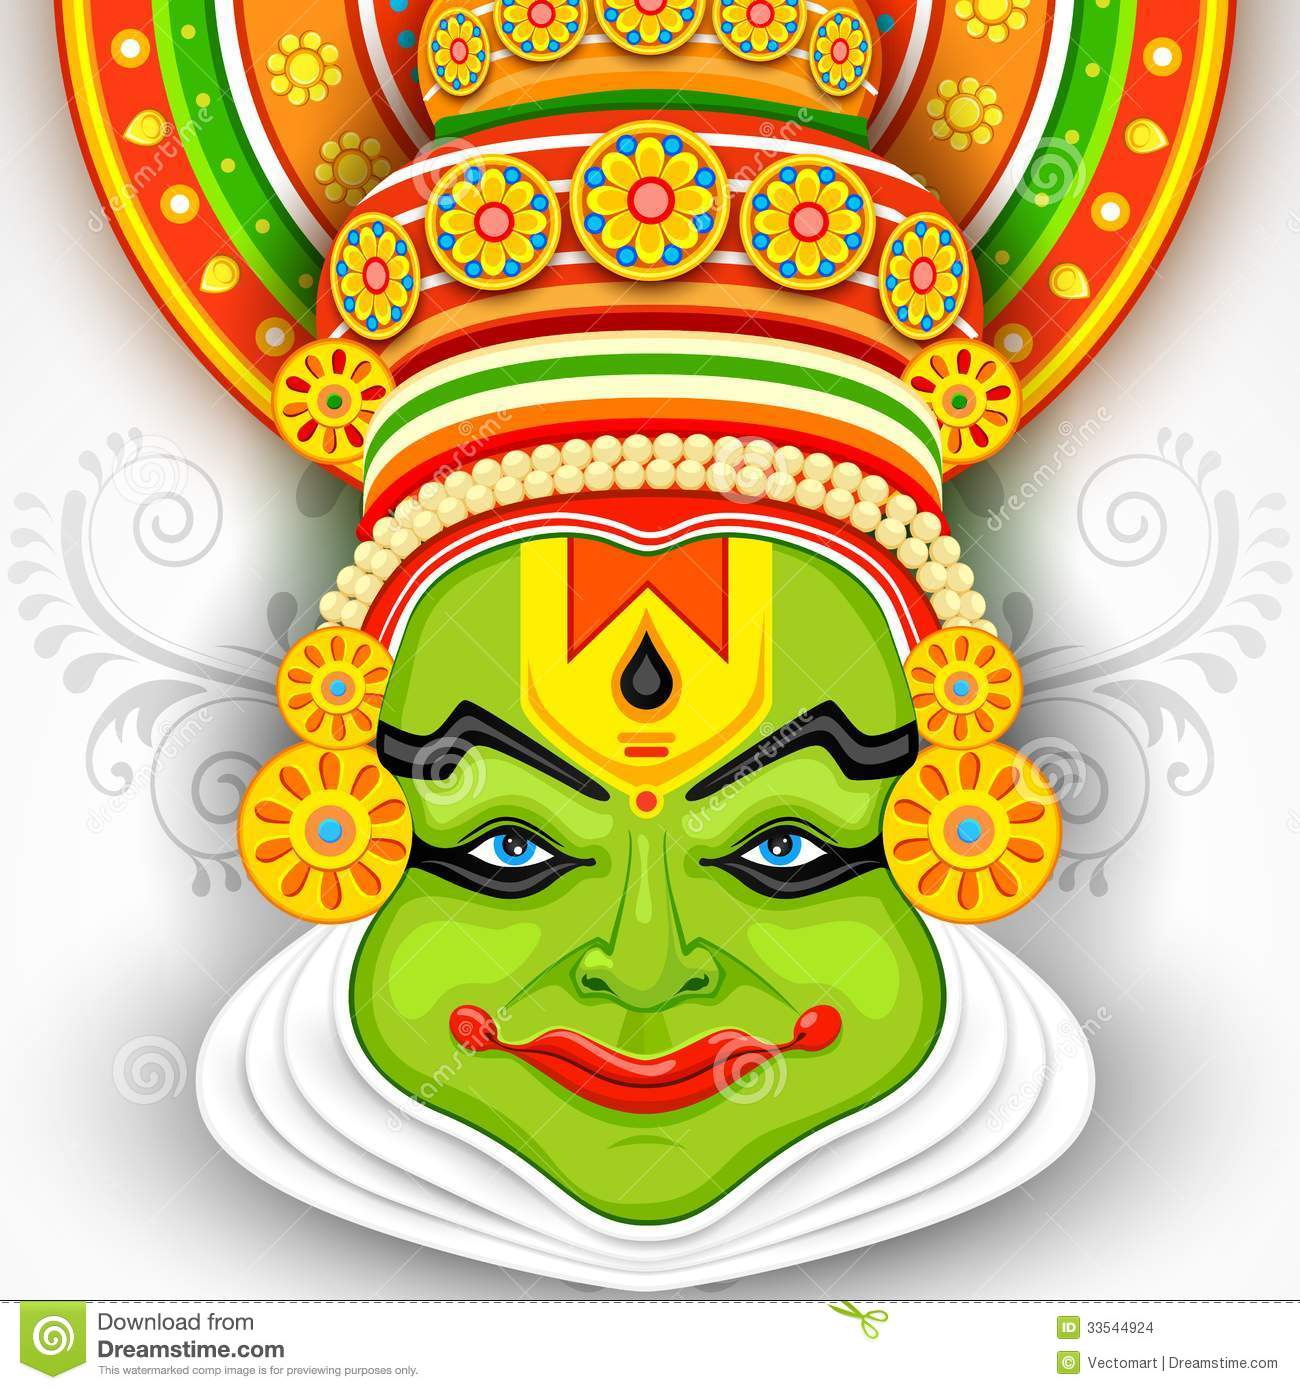 kathakali cartoons pictures illustrations - photo #25